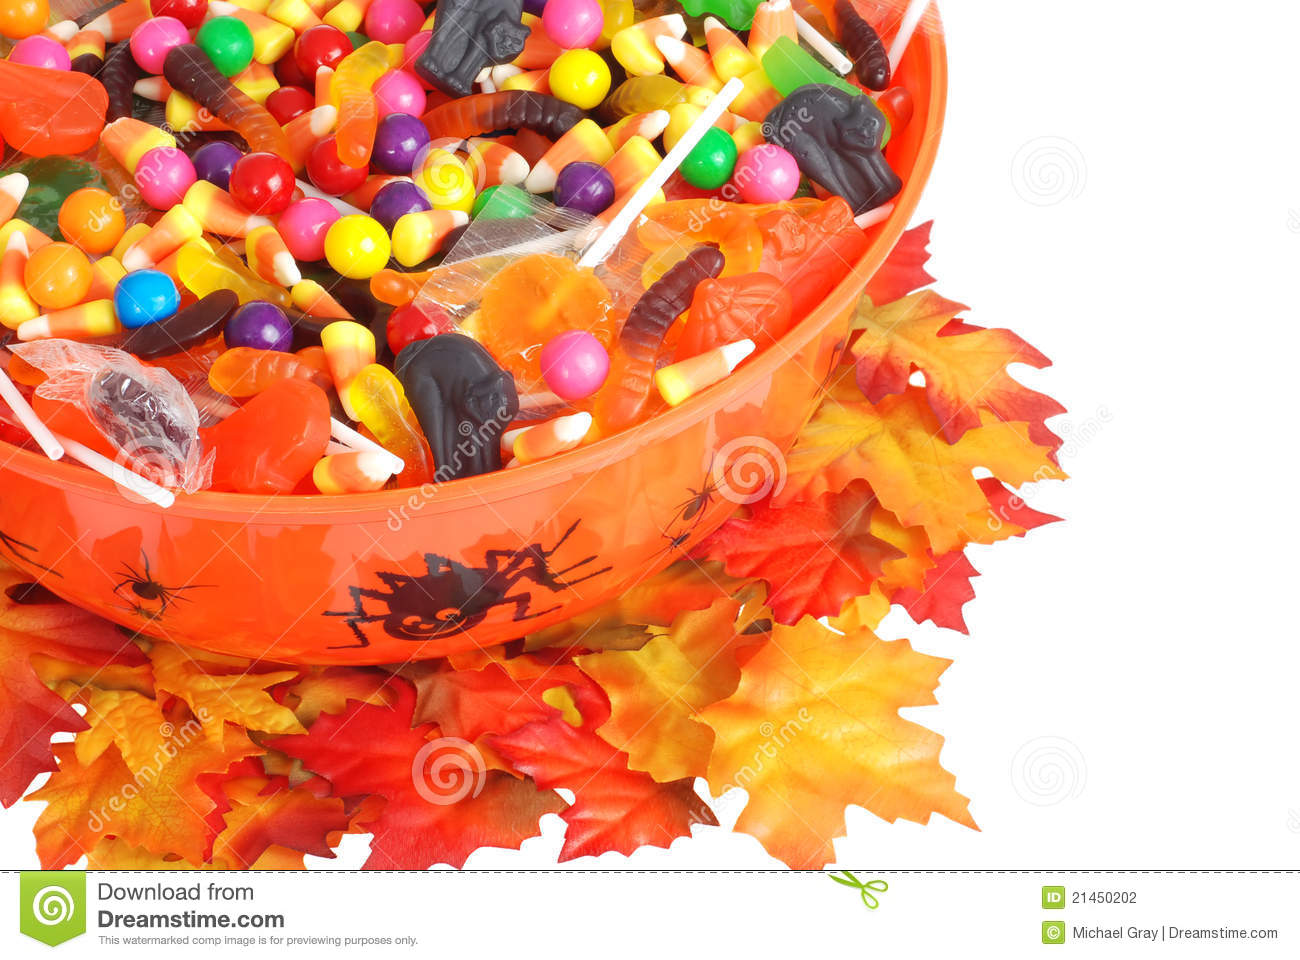 top view halloween candy bowl stock photo - image of bucket, corn